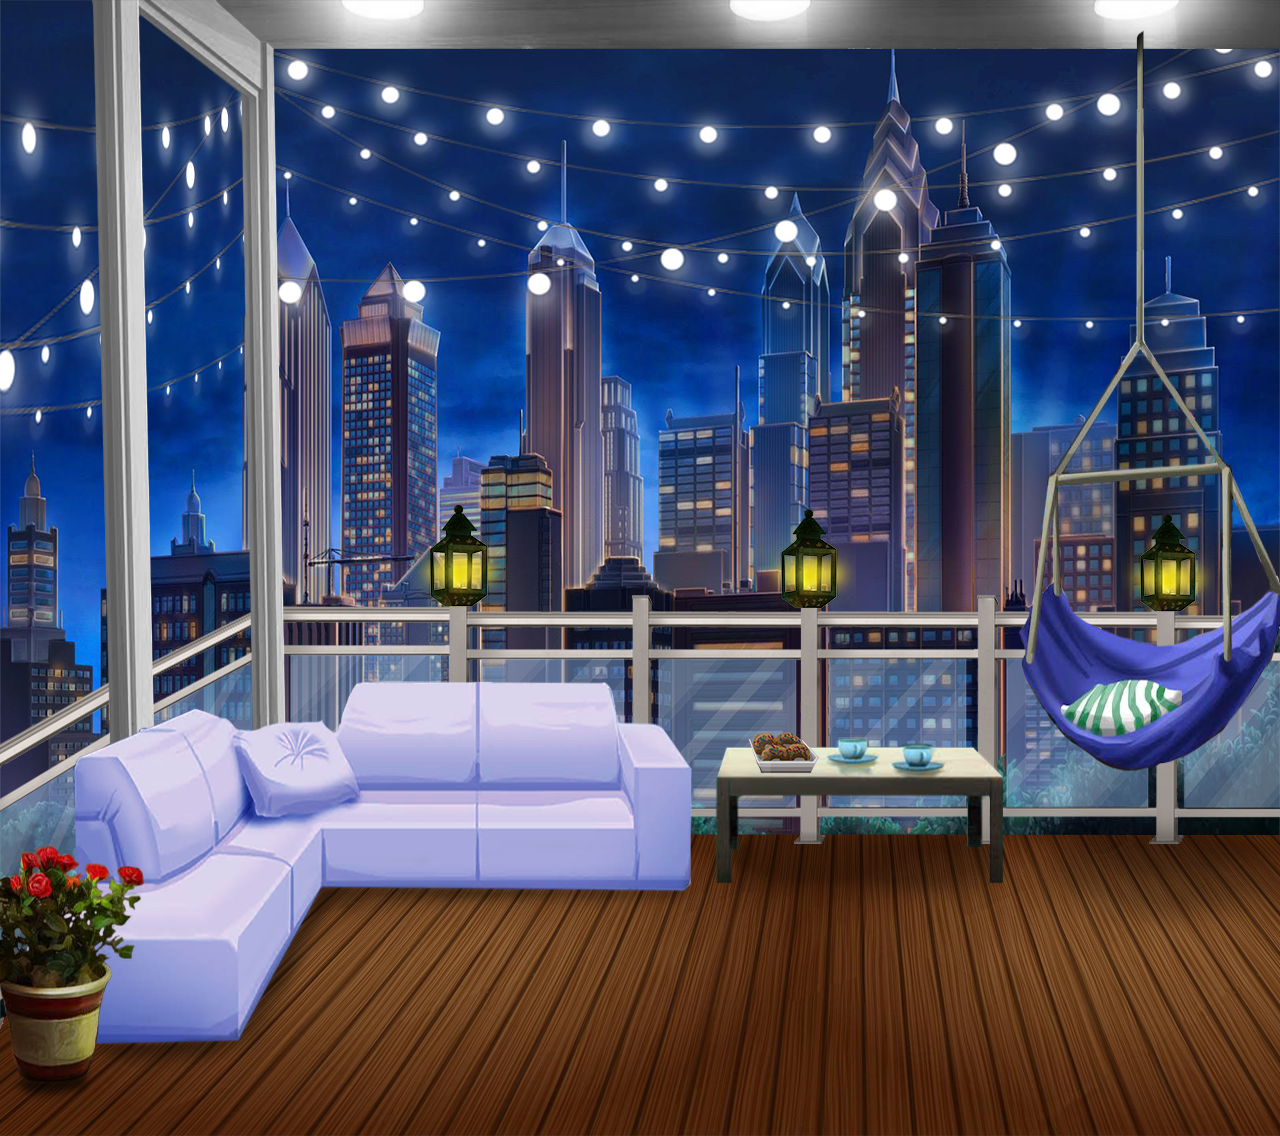 Ext Cozy Balcony 1 Night Anime Background Anime Backgrounds